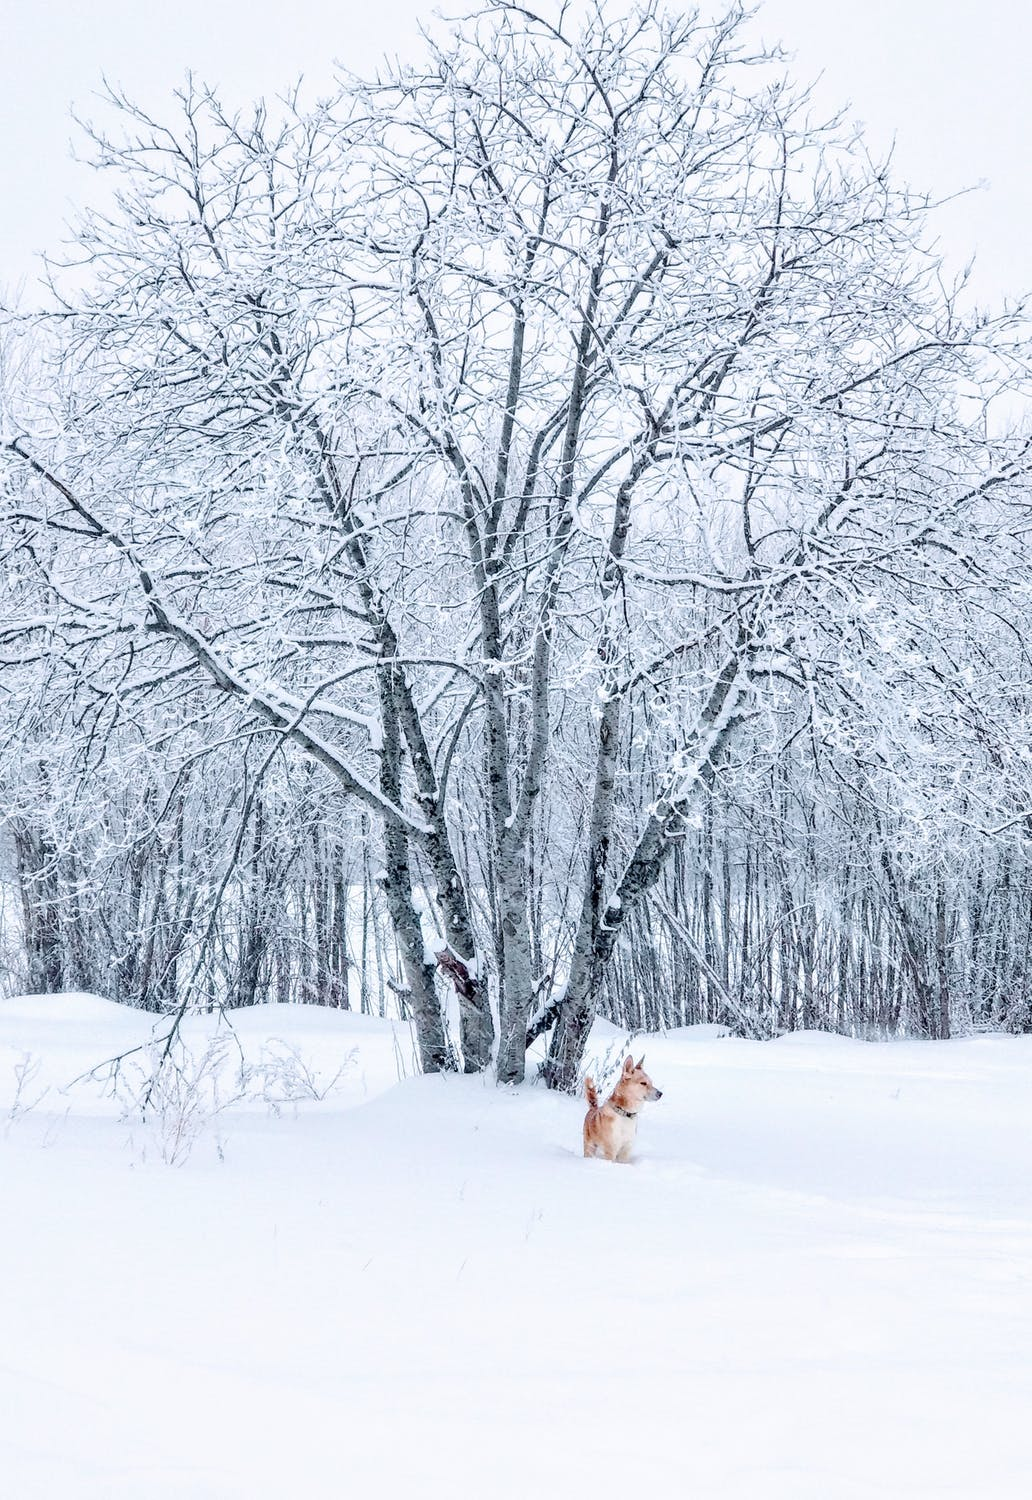 Winter wallpaper with snow, snow wallpaper with dog